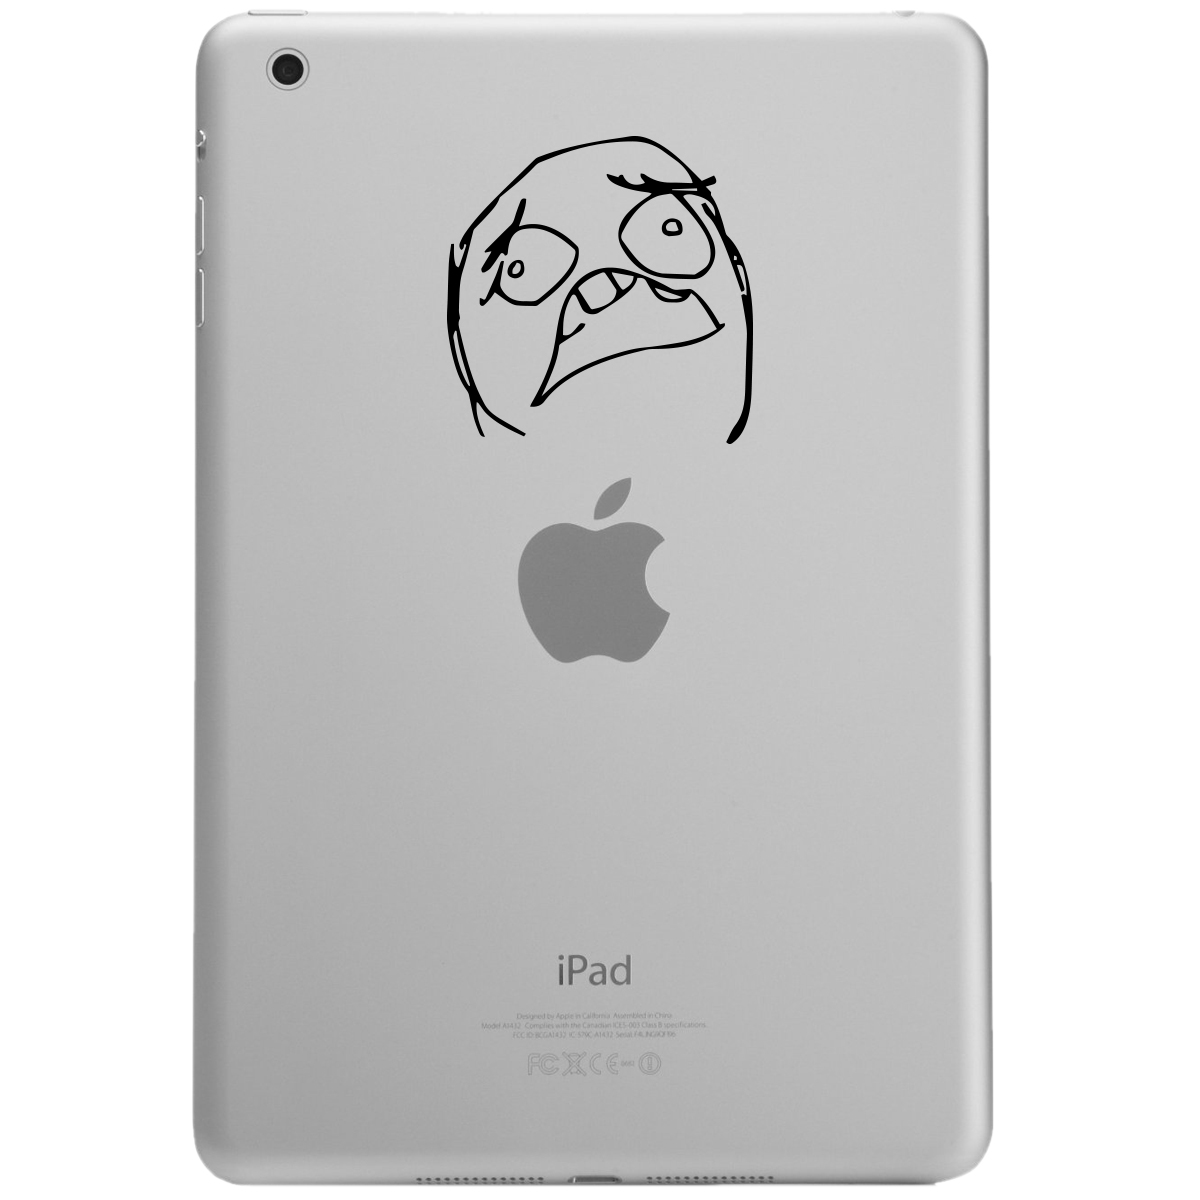 Scared Funny Meme Face iPad Tablet Vinyl Sticker Decal